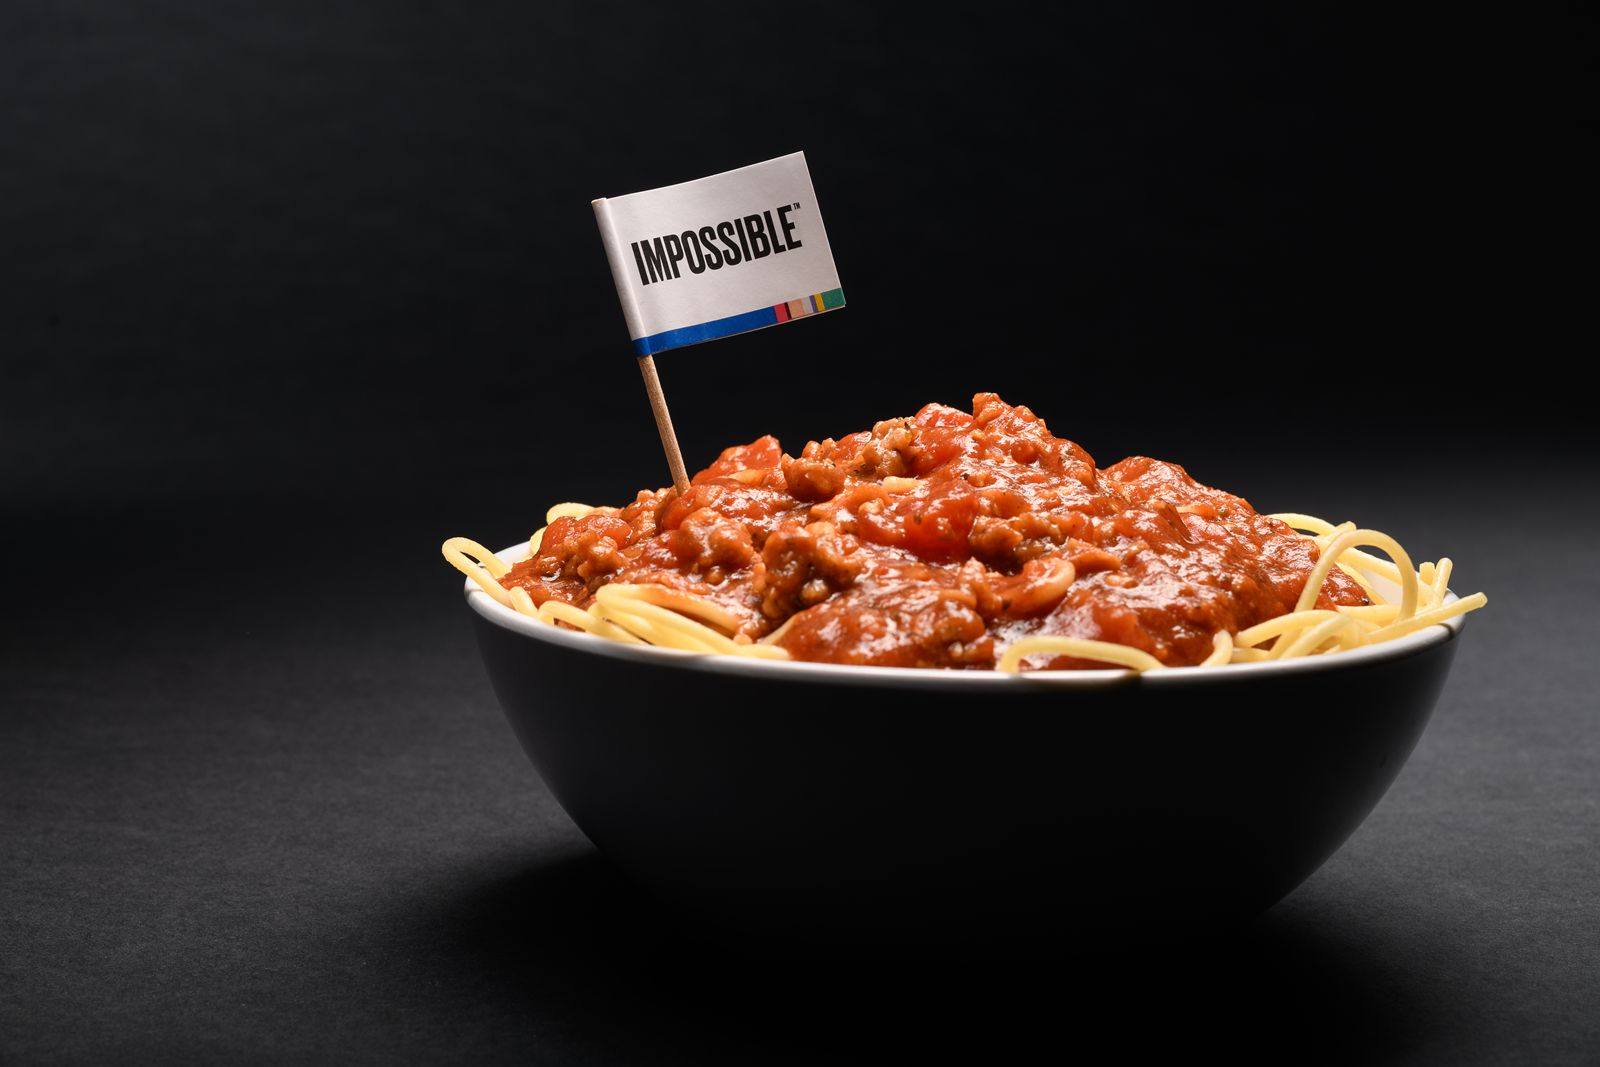 Fazoli's Becomes First Italian Brand to Debut Plant-Based Impossible Meat Sauce